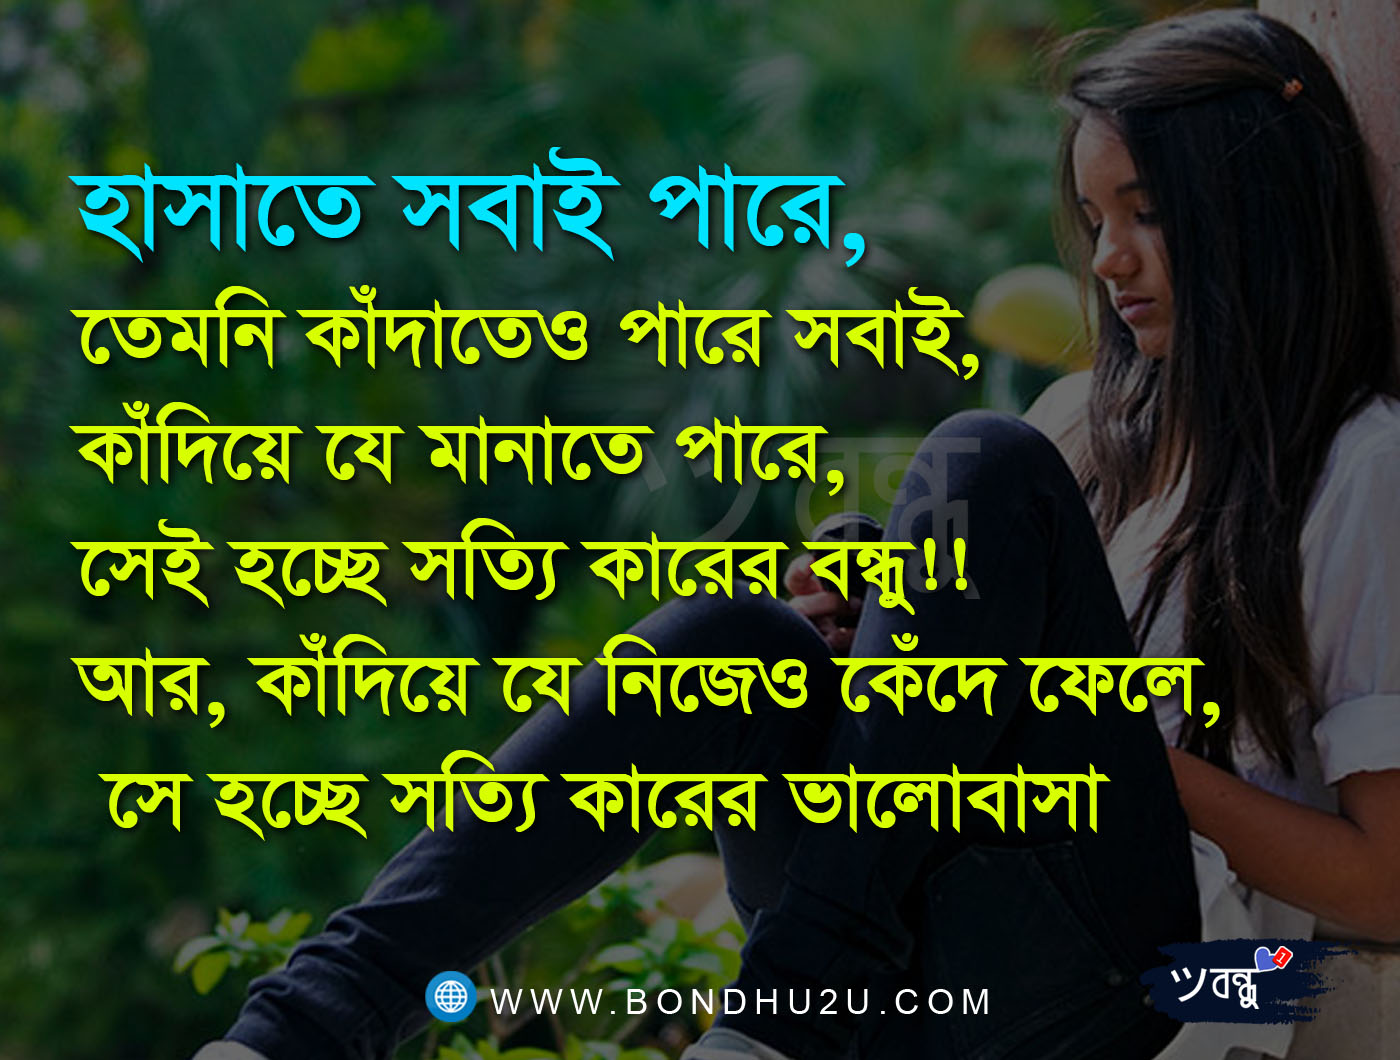 Bangla Love comment Wallpaper : Best Bangla Love SMS - Hot Romantic Bangla Kobita Love Images SMS - bengali writing wallpaper ...